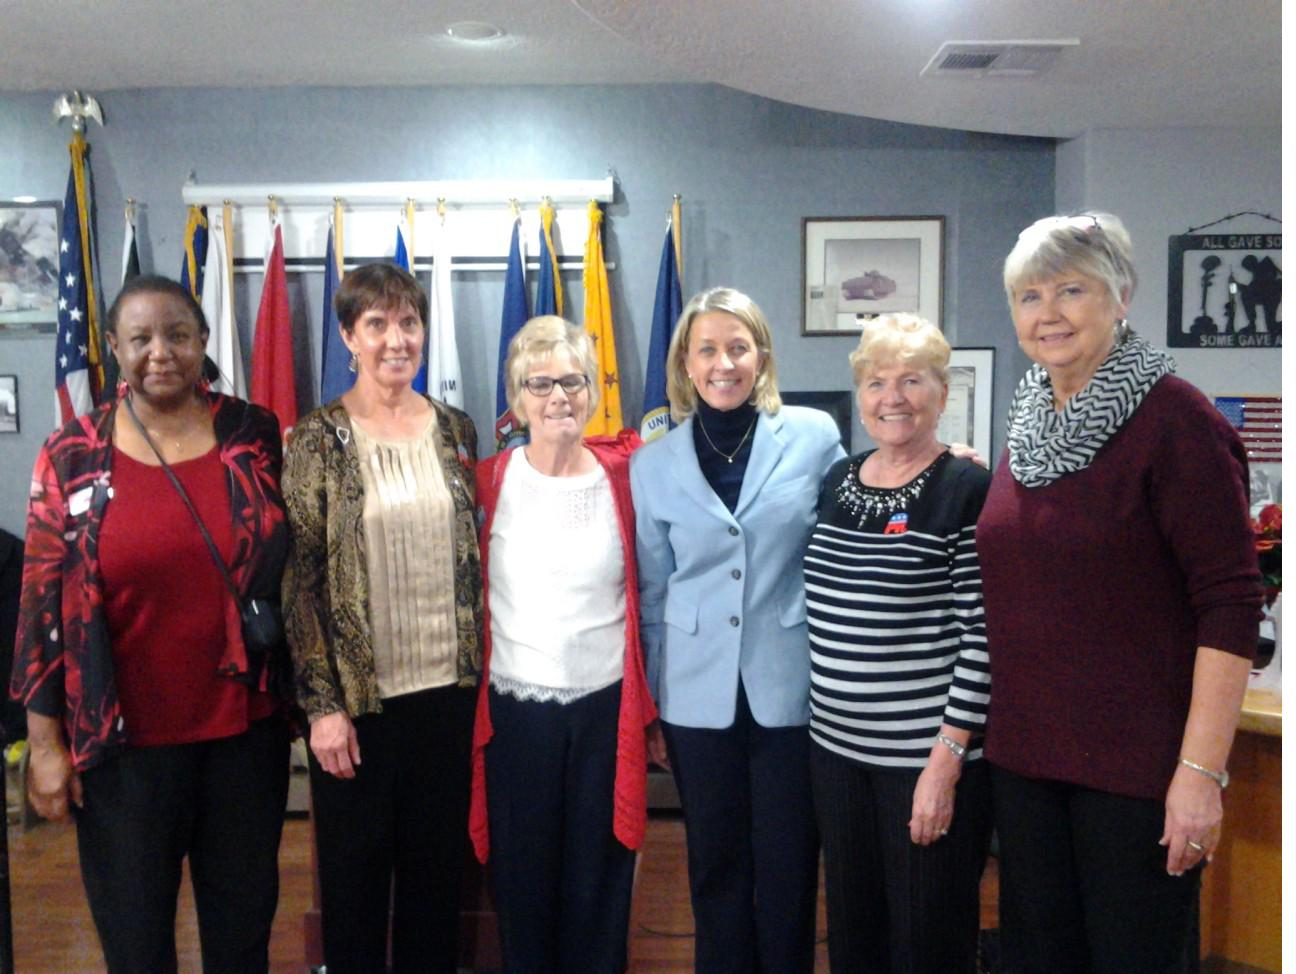 New officers installed for Mesquite Republican Women